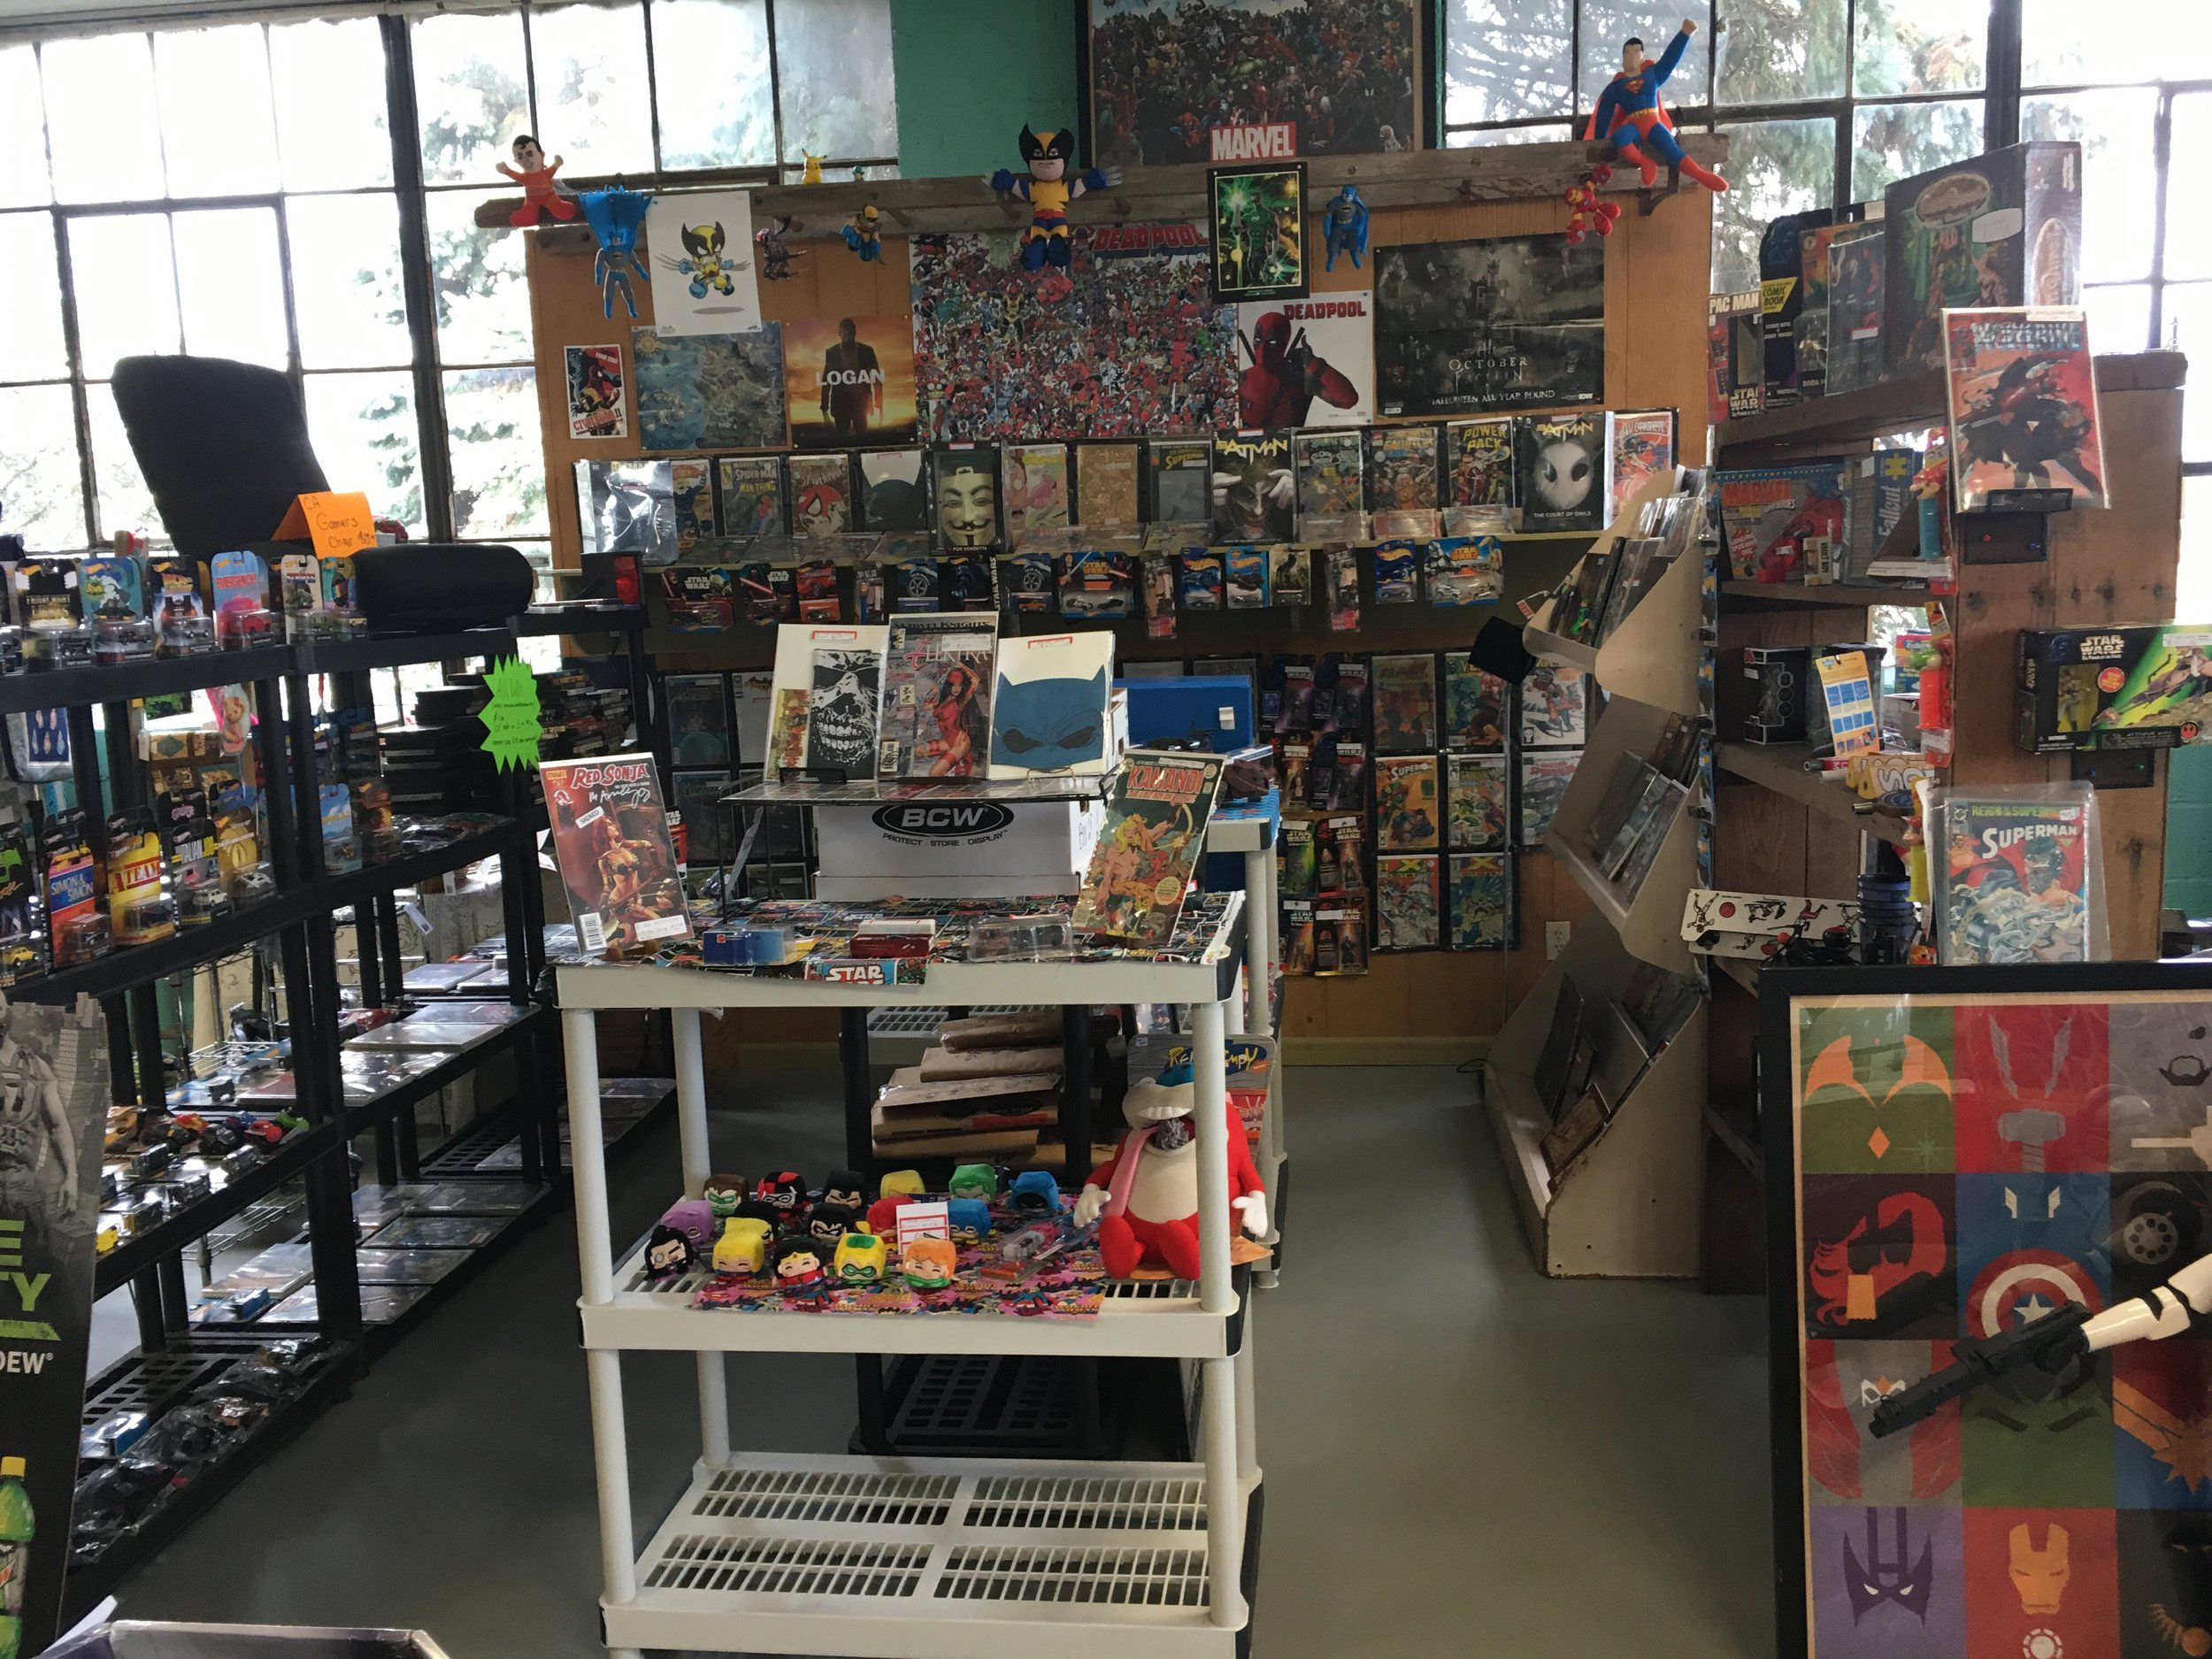 Wiz Collectibles - Comics, toys, hot wheels, hero figures, books, posters, sports cards, Pez dispensers, hero knives, cardboard stand ups, all from the 60's to current trends